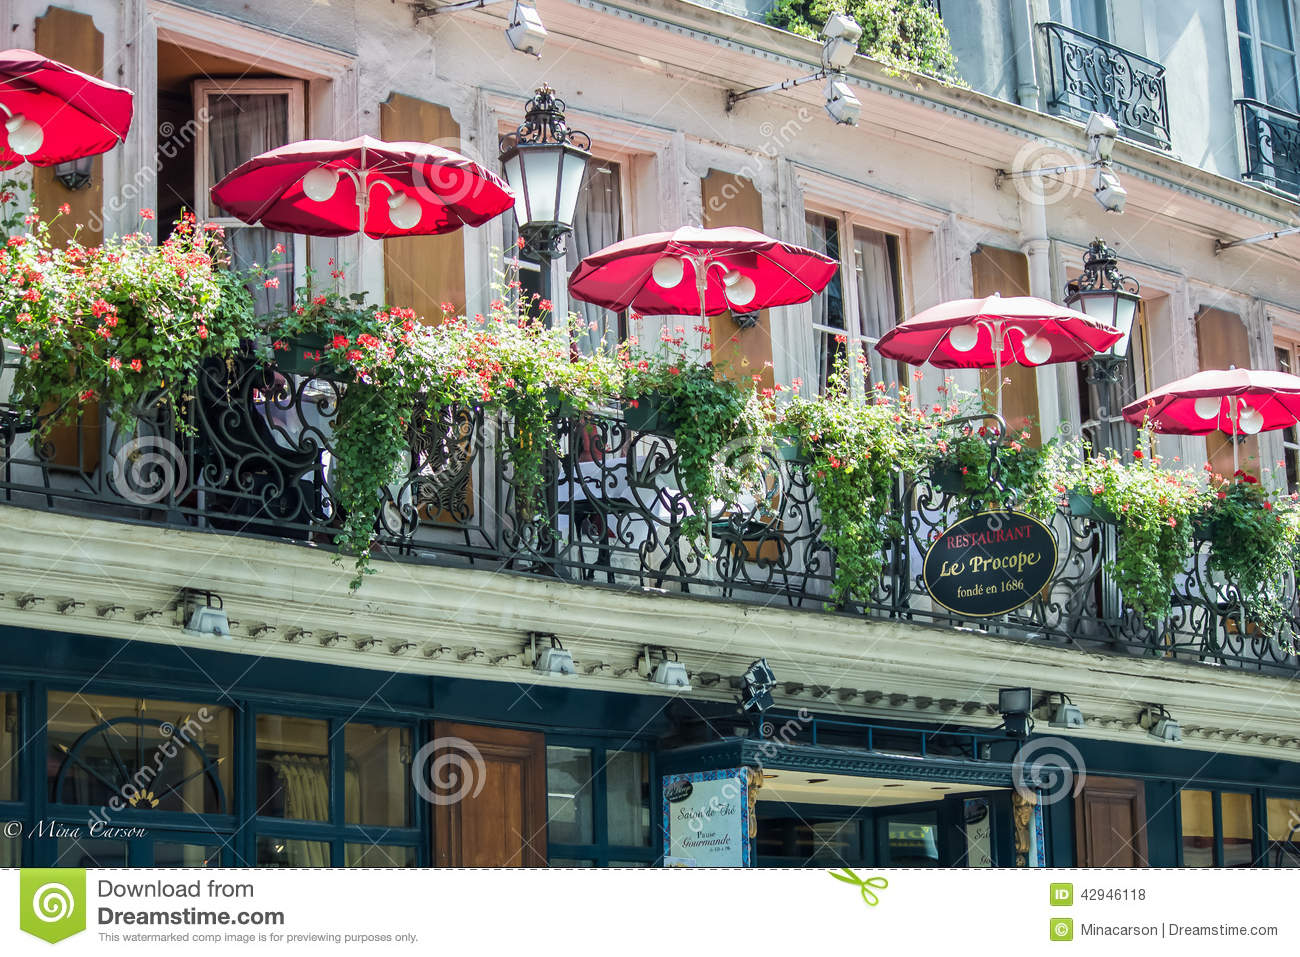 Balcony of le procope old restaurant in paris with red for The balcony restaurant